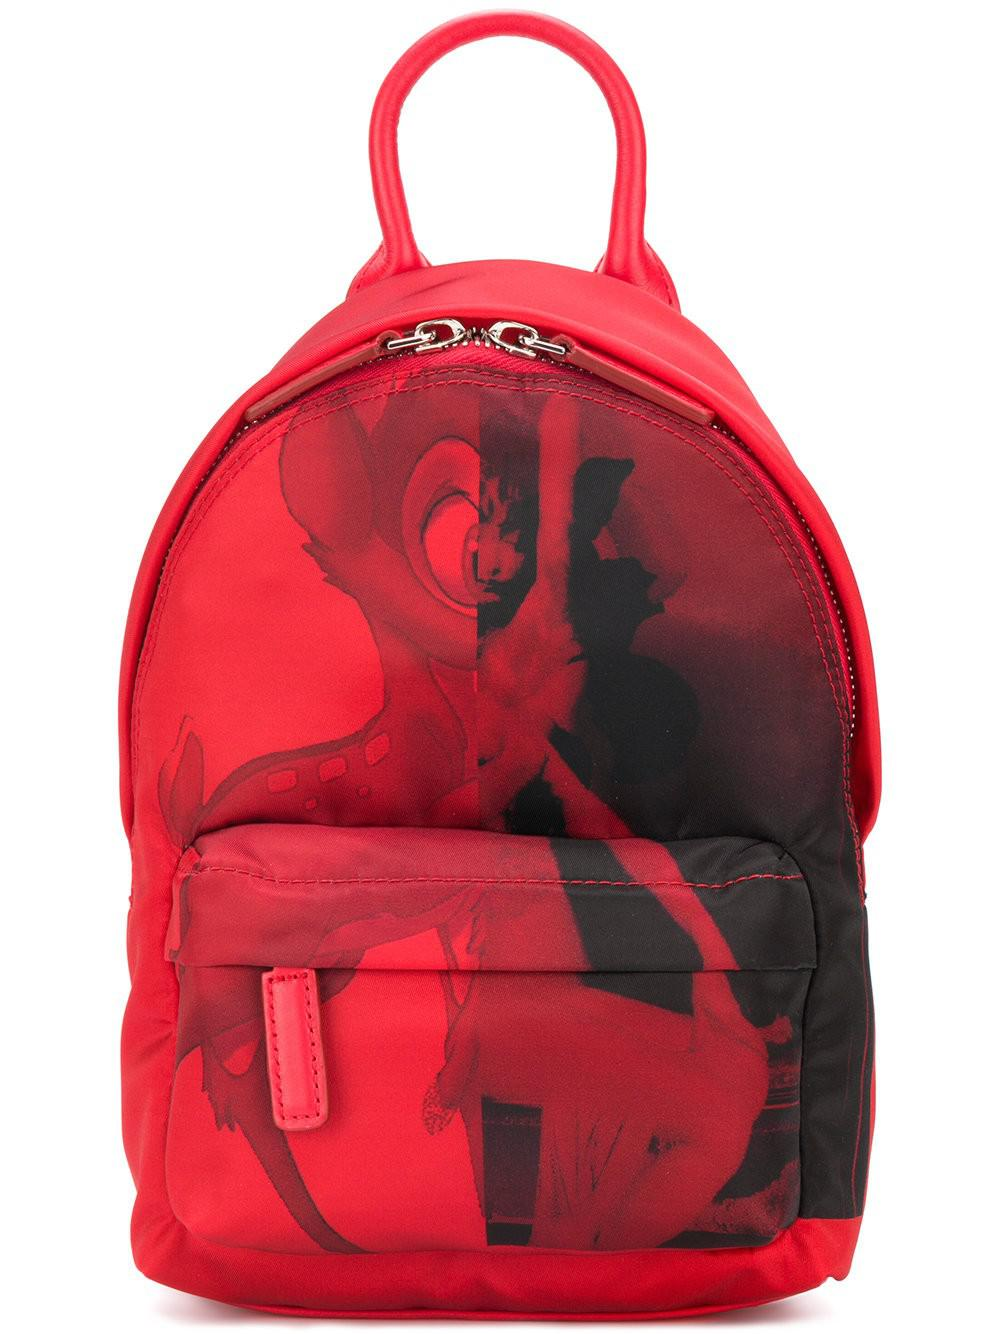 bac4ec083baa Givenchy Backpack Mini